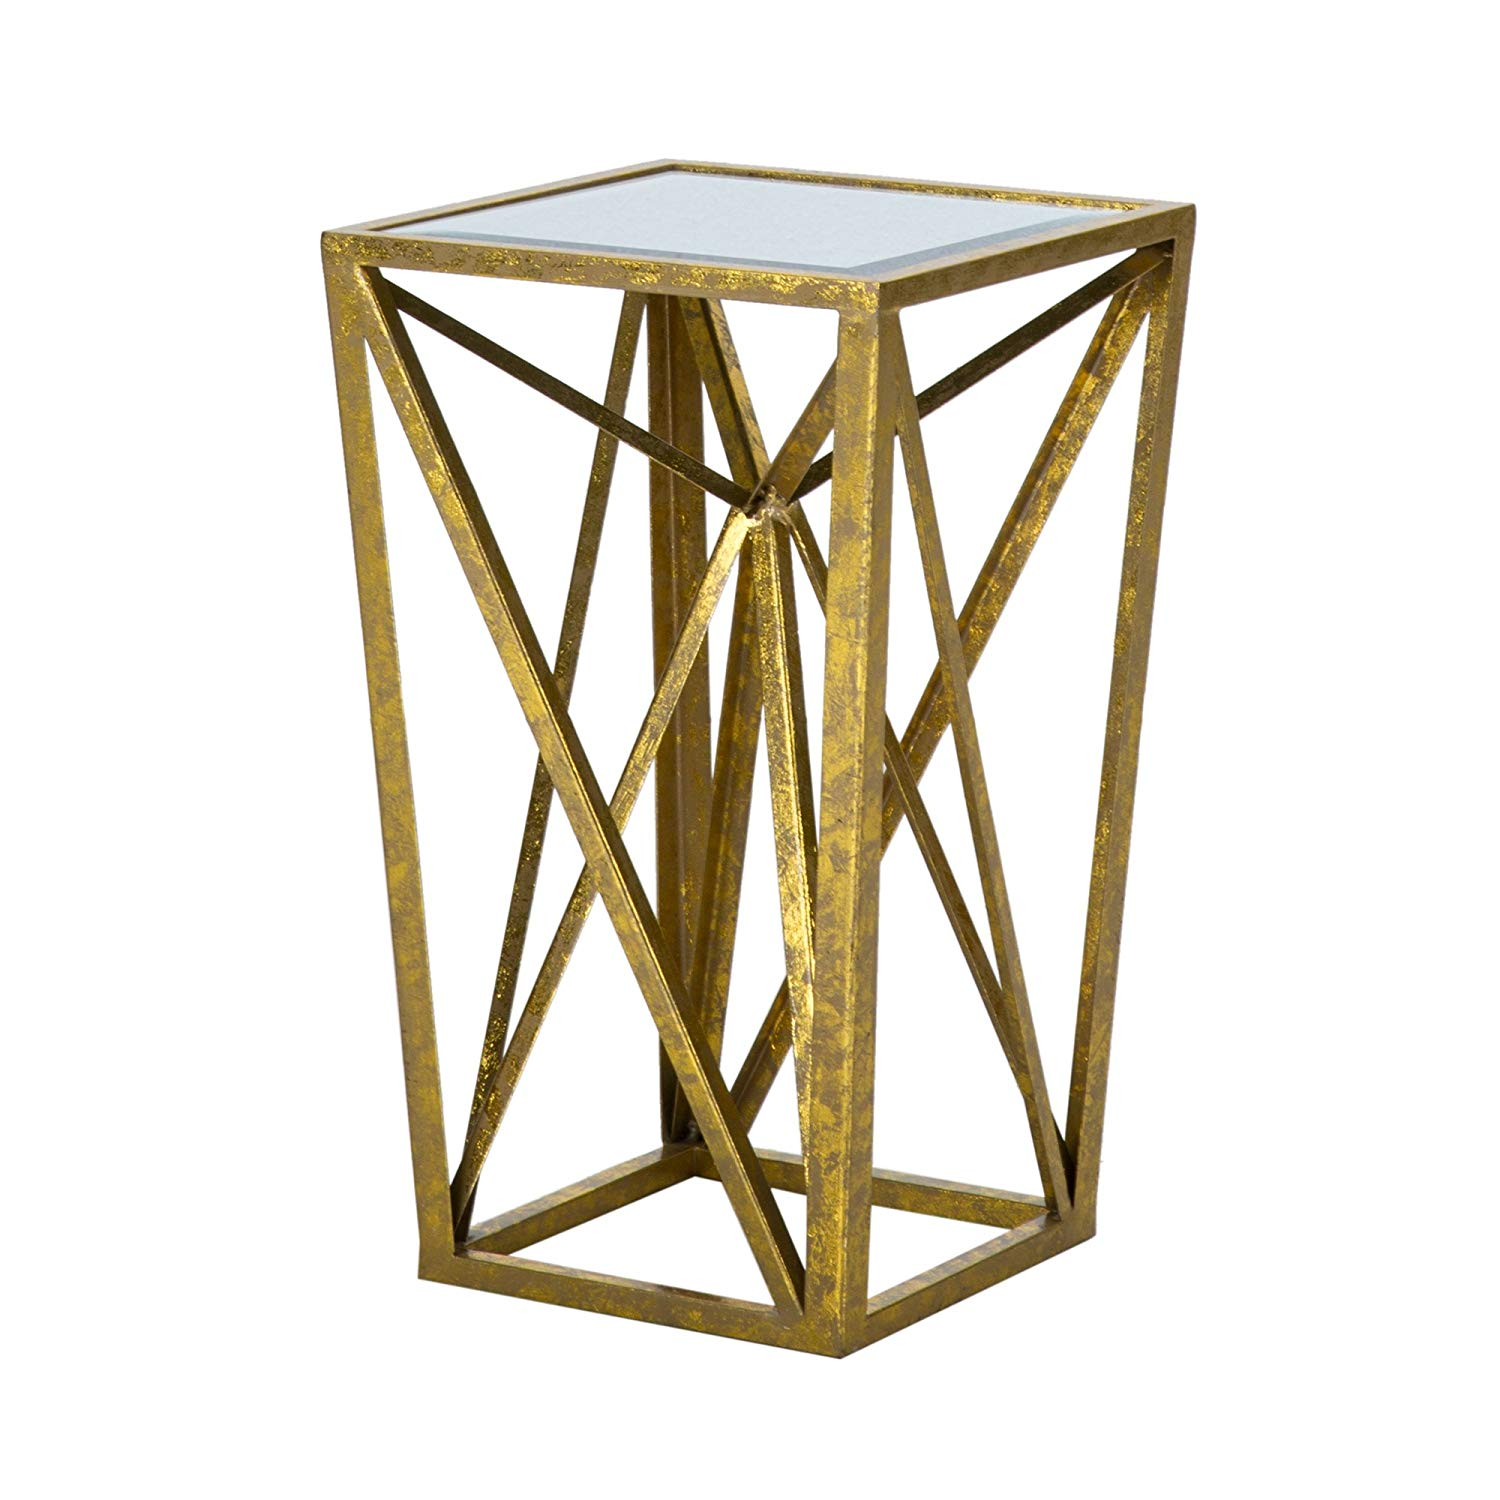 madison park zee accent tables mirror glass metal side table gold angular design modern style end piece top hollow round short patio ceramic outdoor shabby chic chest drawers iron